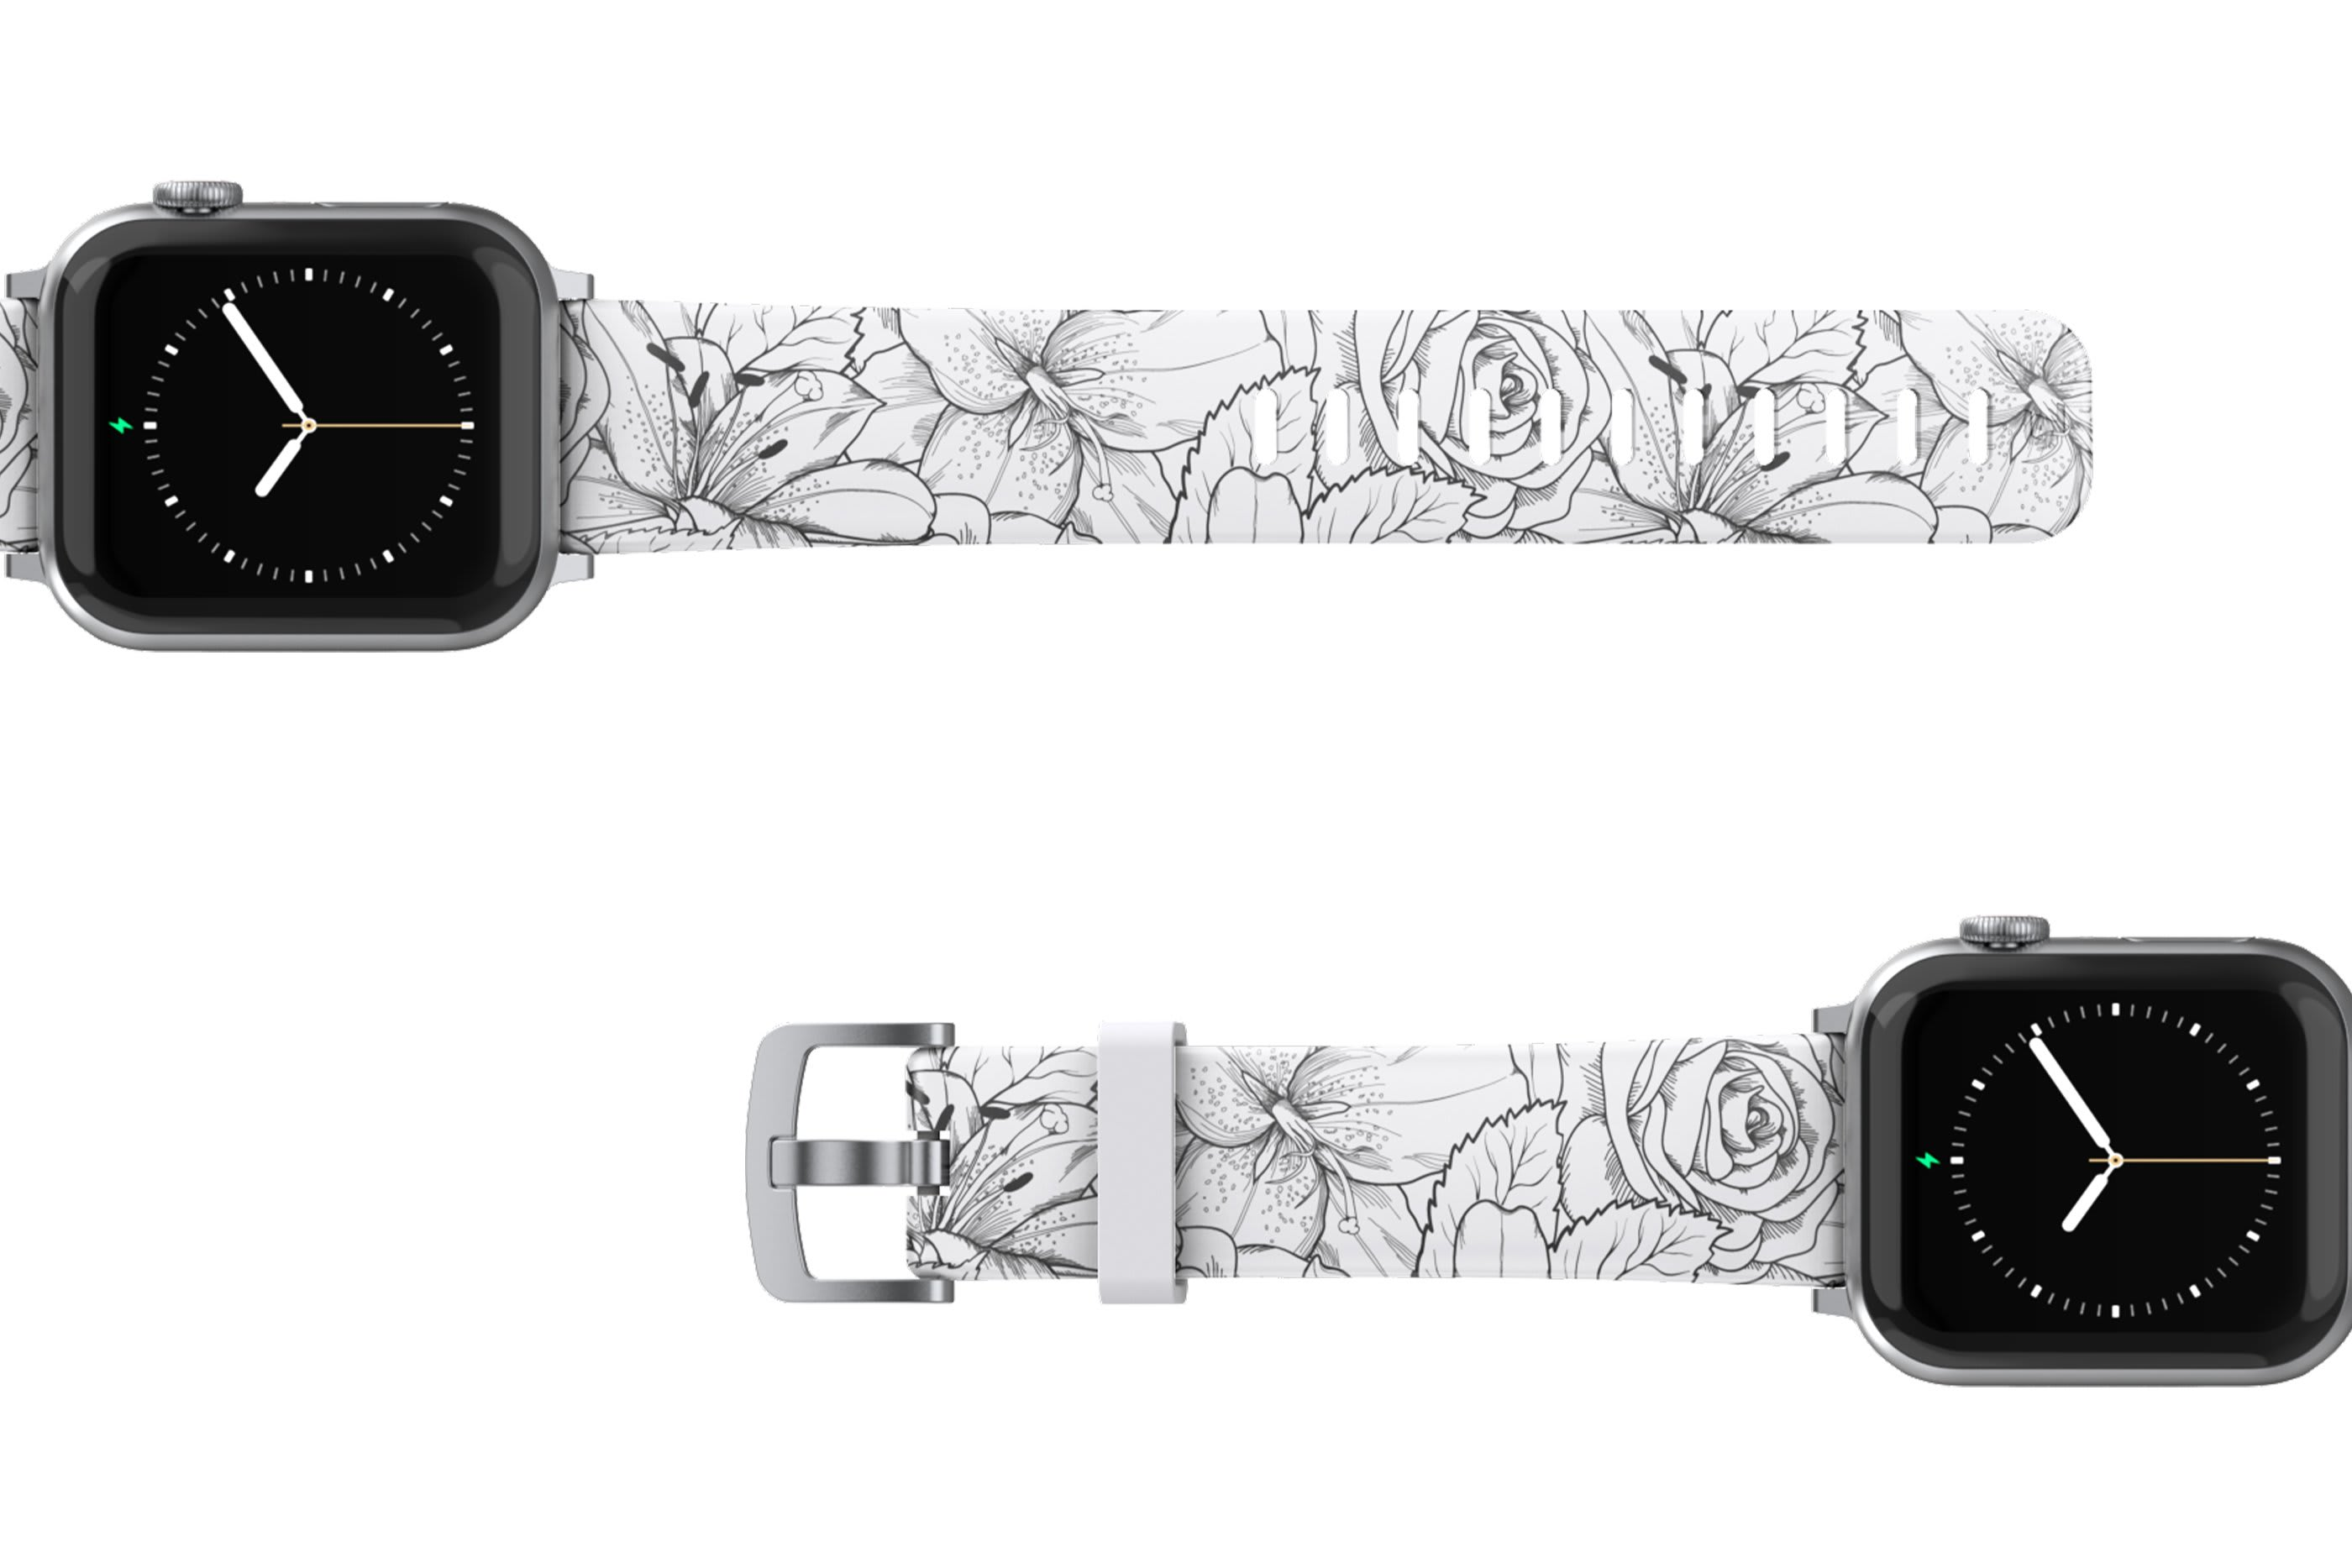 Winter Rose Apple Watch Band with silver hardware viewed top down